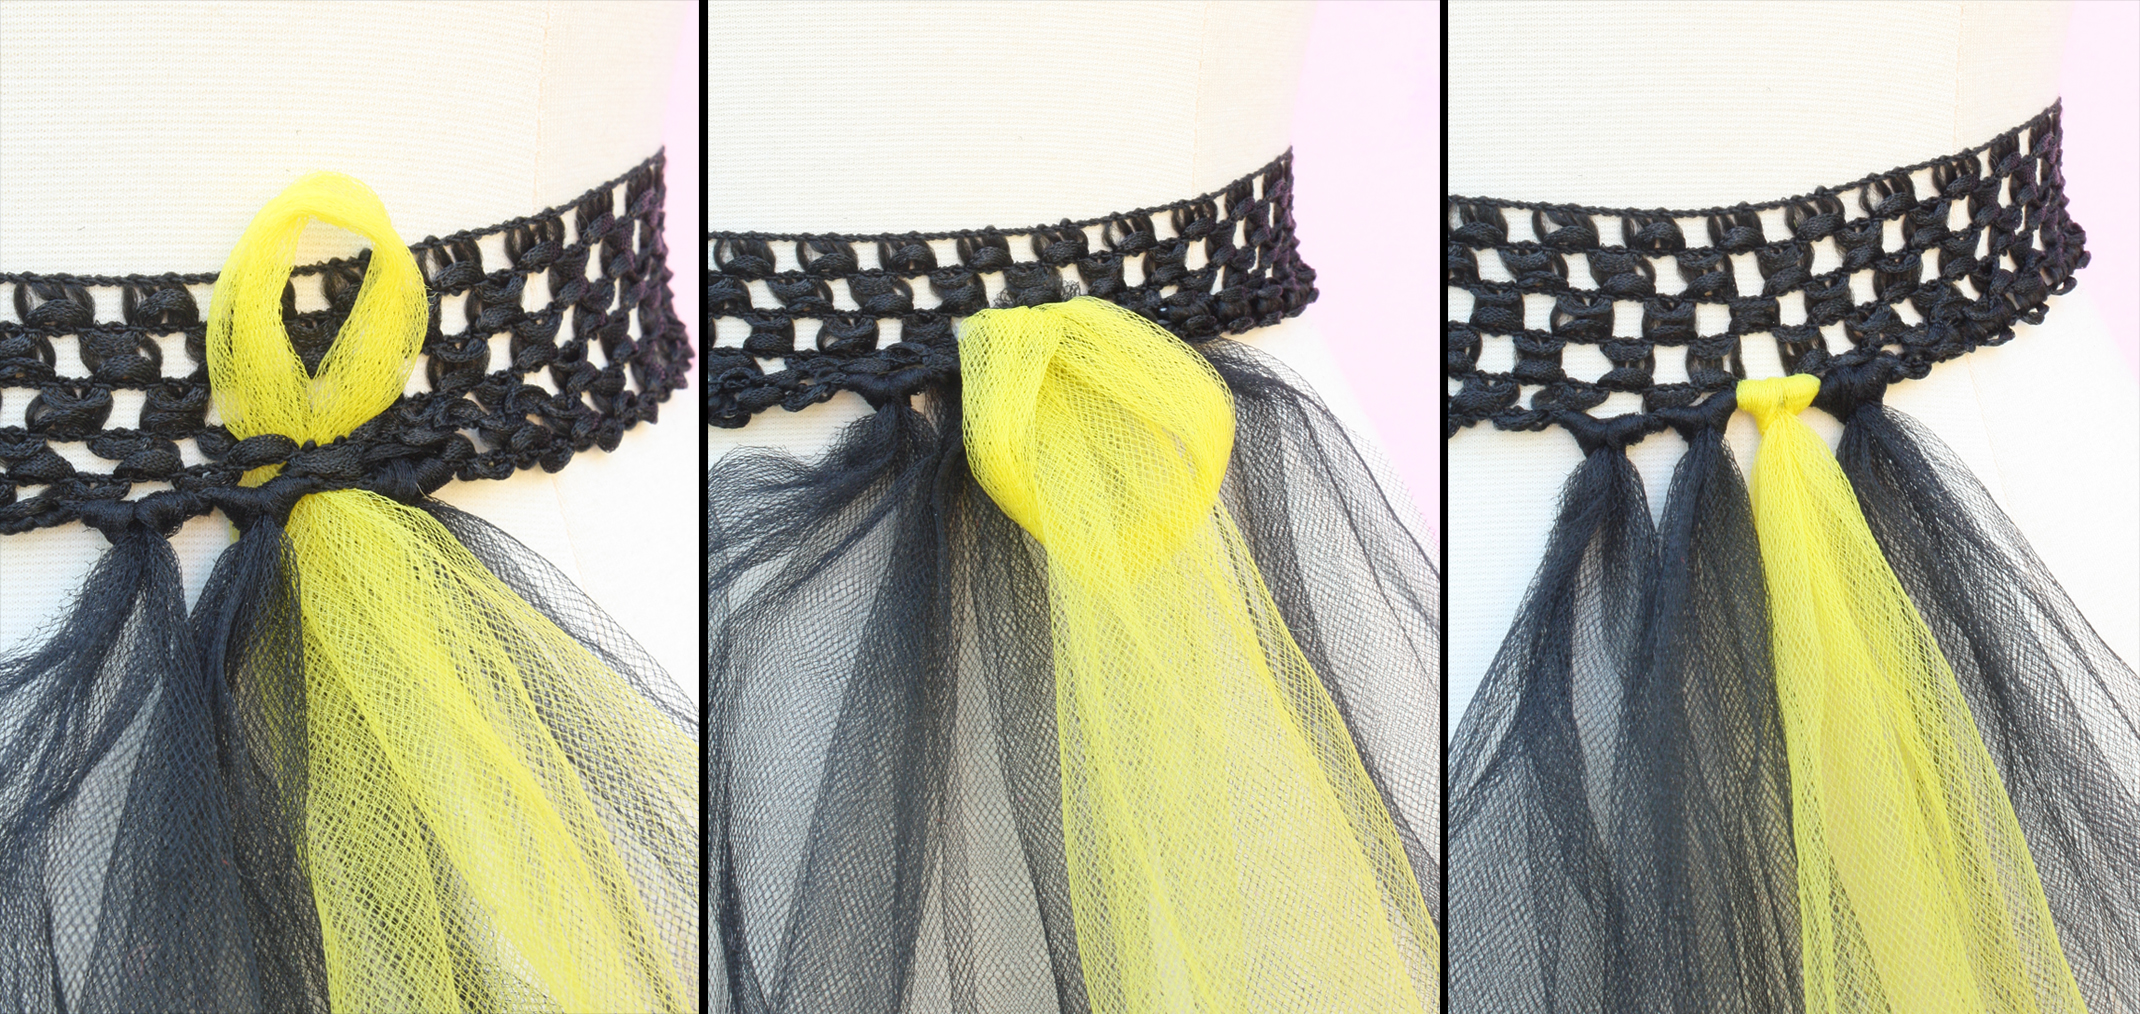 e358caabdc516 Bumble Bee Costume - How to make a Bumble Bee Tulle skirt -  www.MeandAnnabelLee